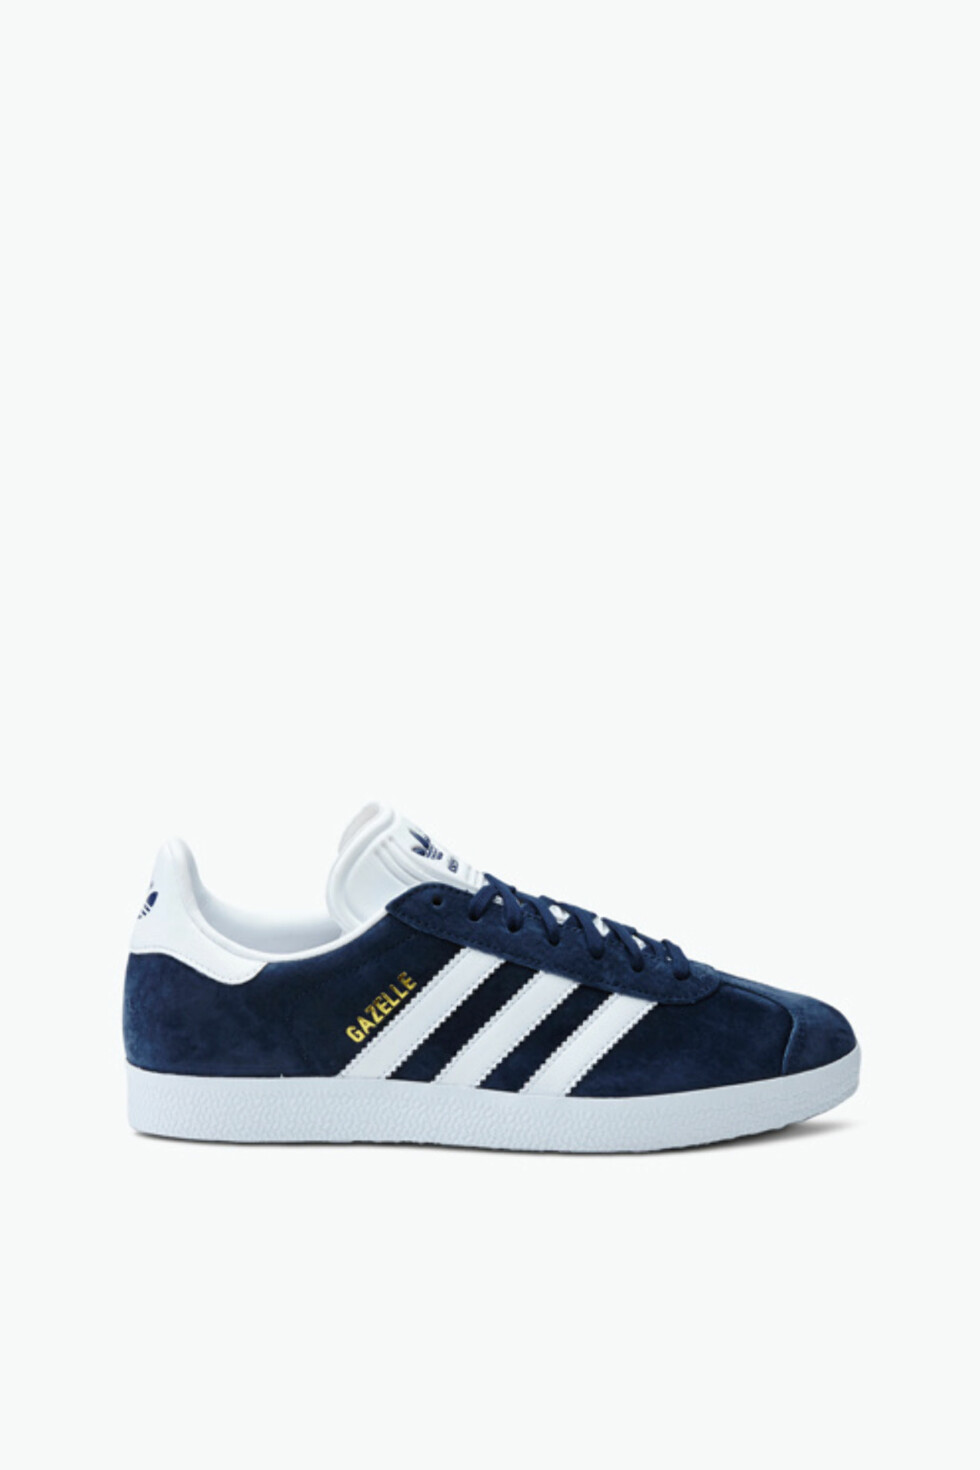 "Sneakers fra Adidas via Ellos.no | kr 999 | <a href=""https://track.adtraction.com/t/t?a=1068408670&as=1115634940&t=2&tk=1&url=http://www.ellos.no/adidas-originals/sneakers-gazelle/528320?N=1z141puZ1z13xv8Z1z141od&Ns=RankValue5